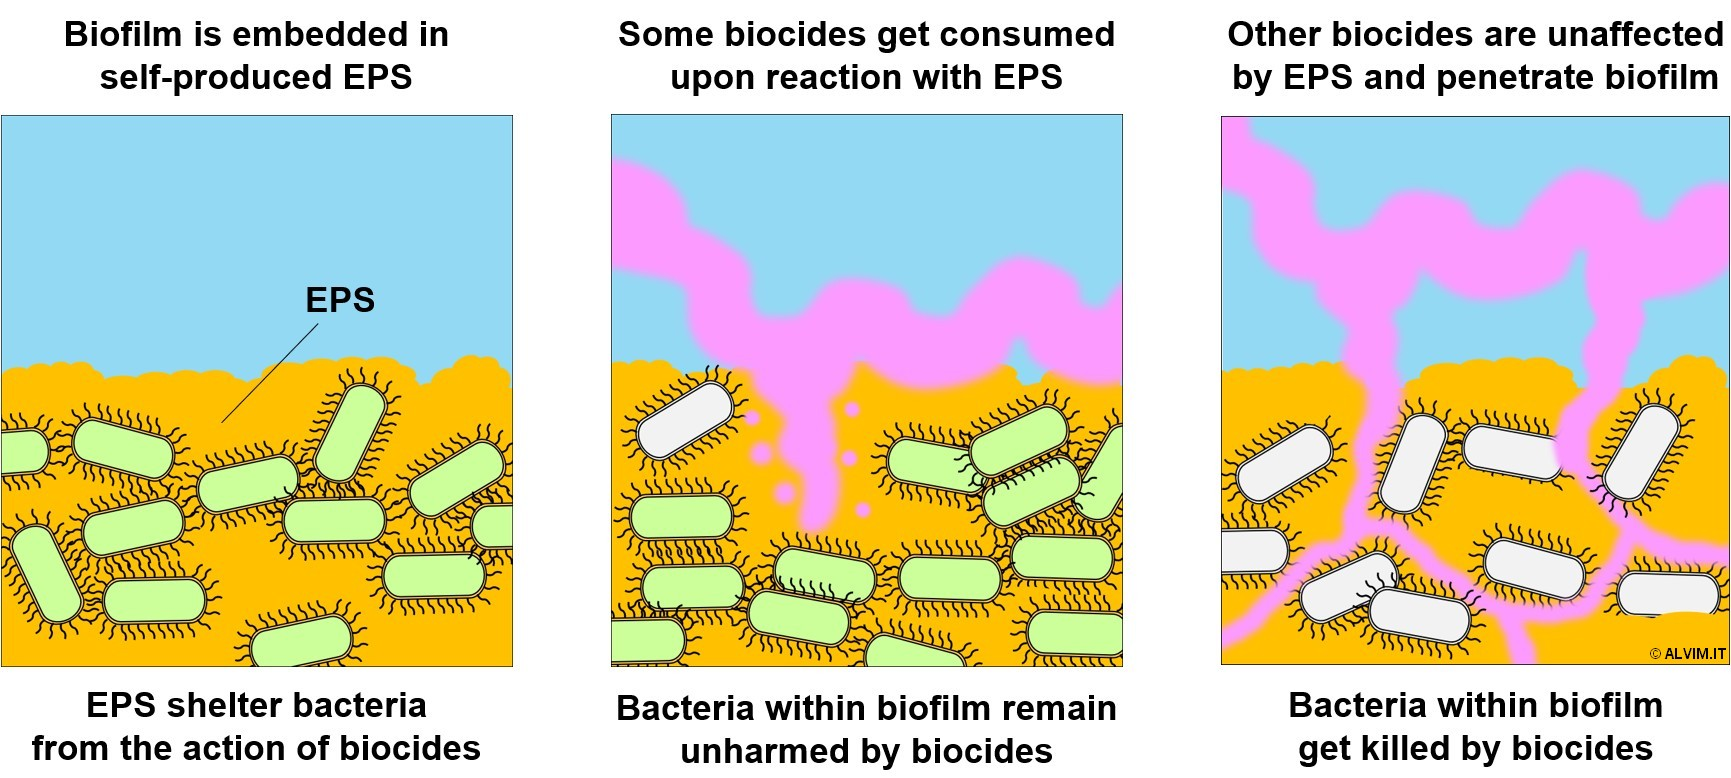 The biocide ability to penetrate biofilm is inversely proportional to its reactivity toward EPS